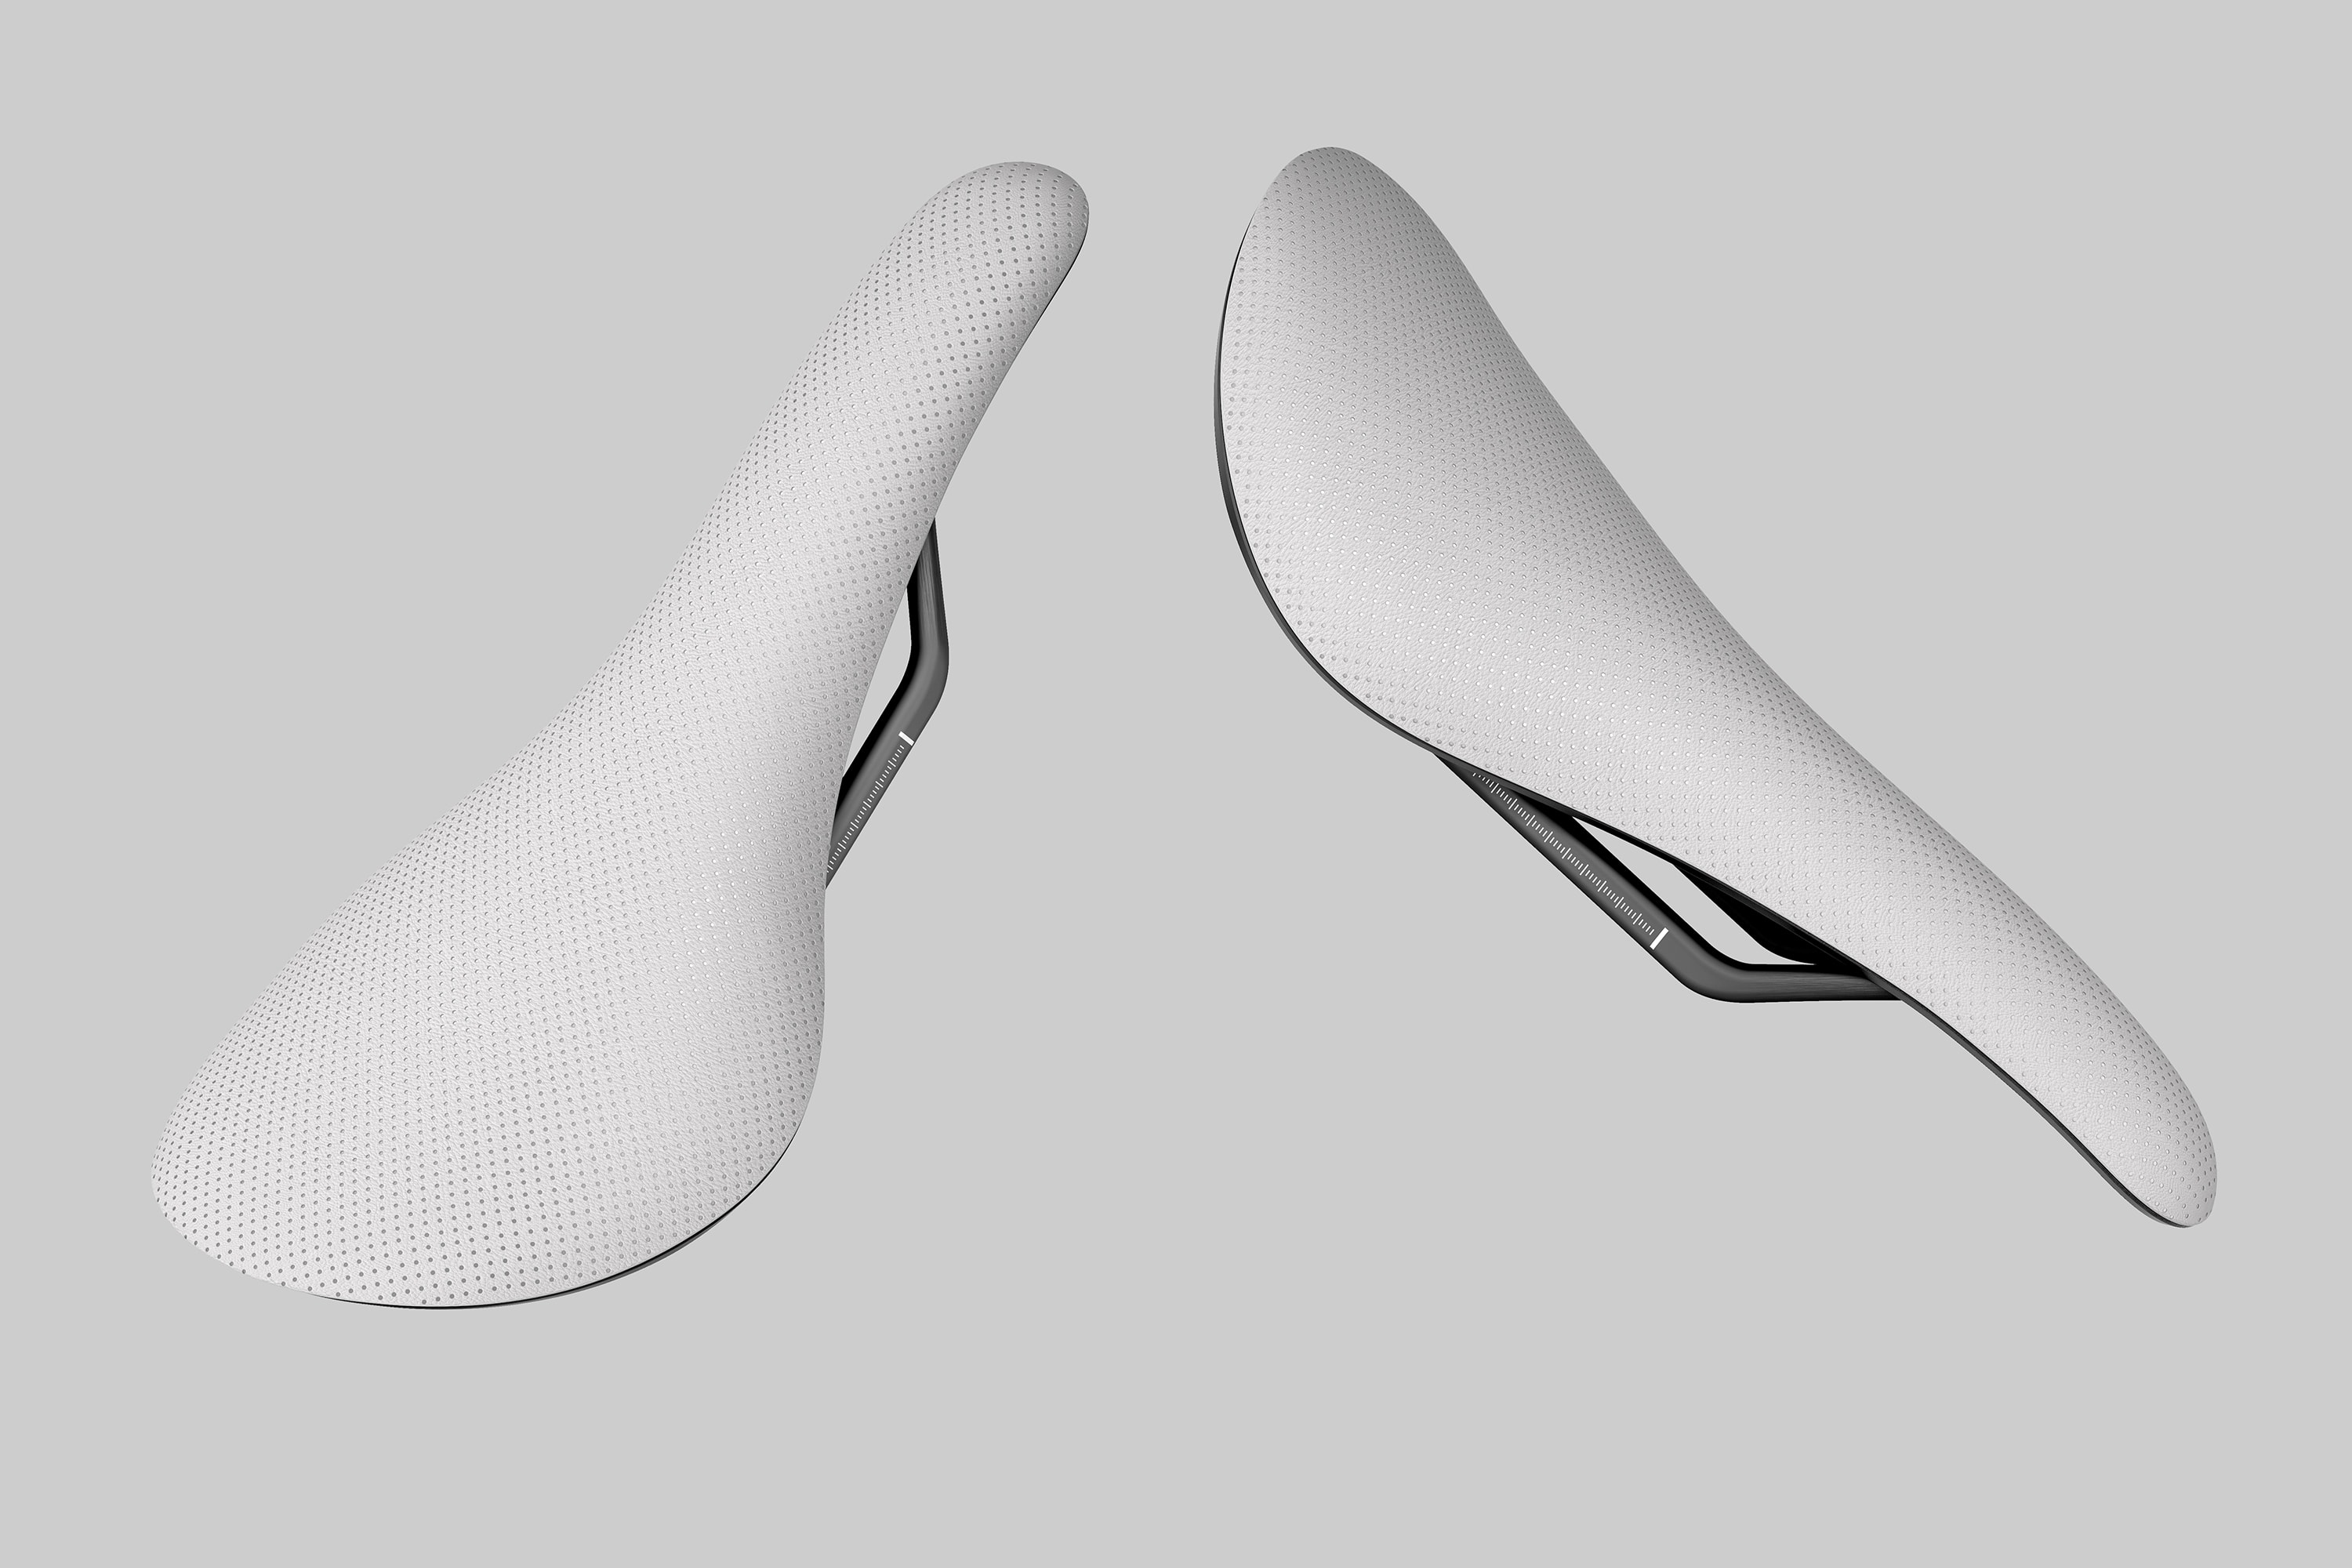 Perspective view of two Rapha Saddles floating against a light grey background. The image shows the top of the saddles.